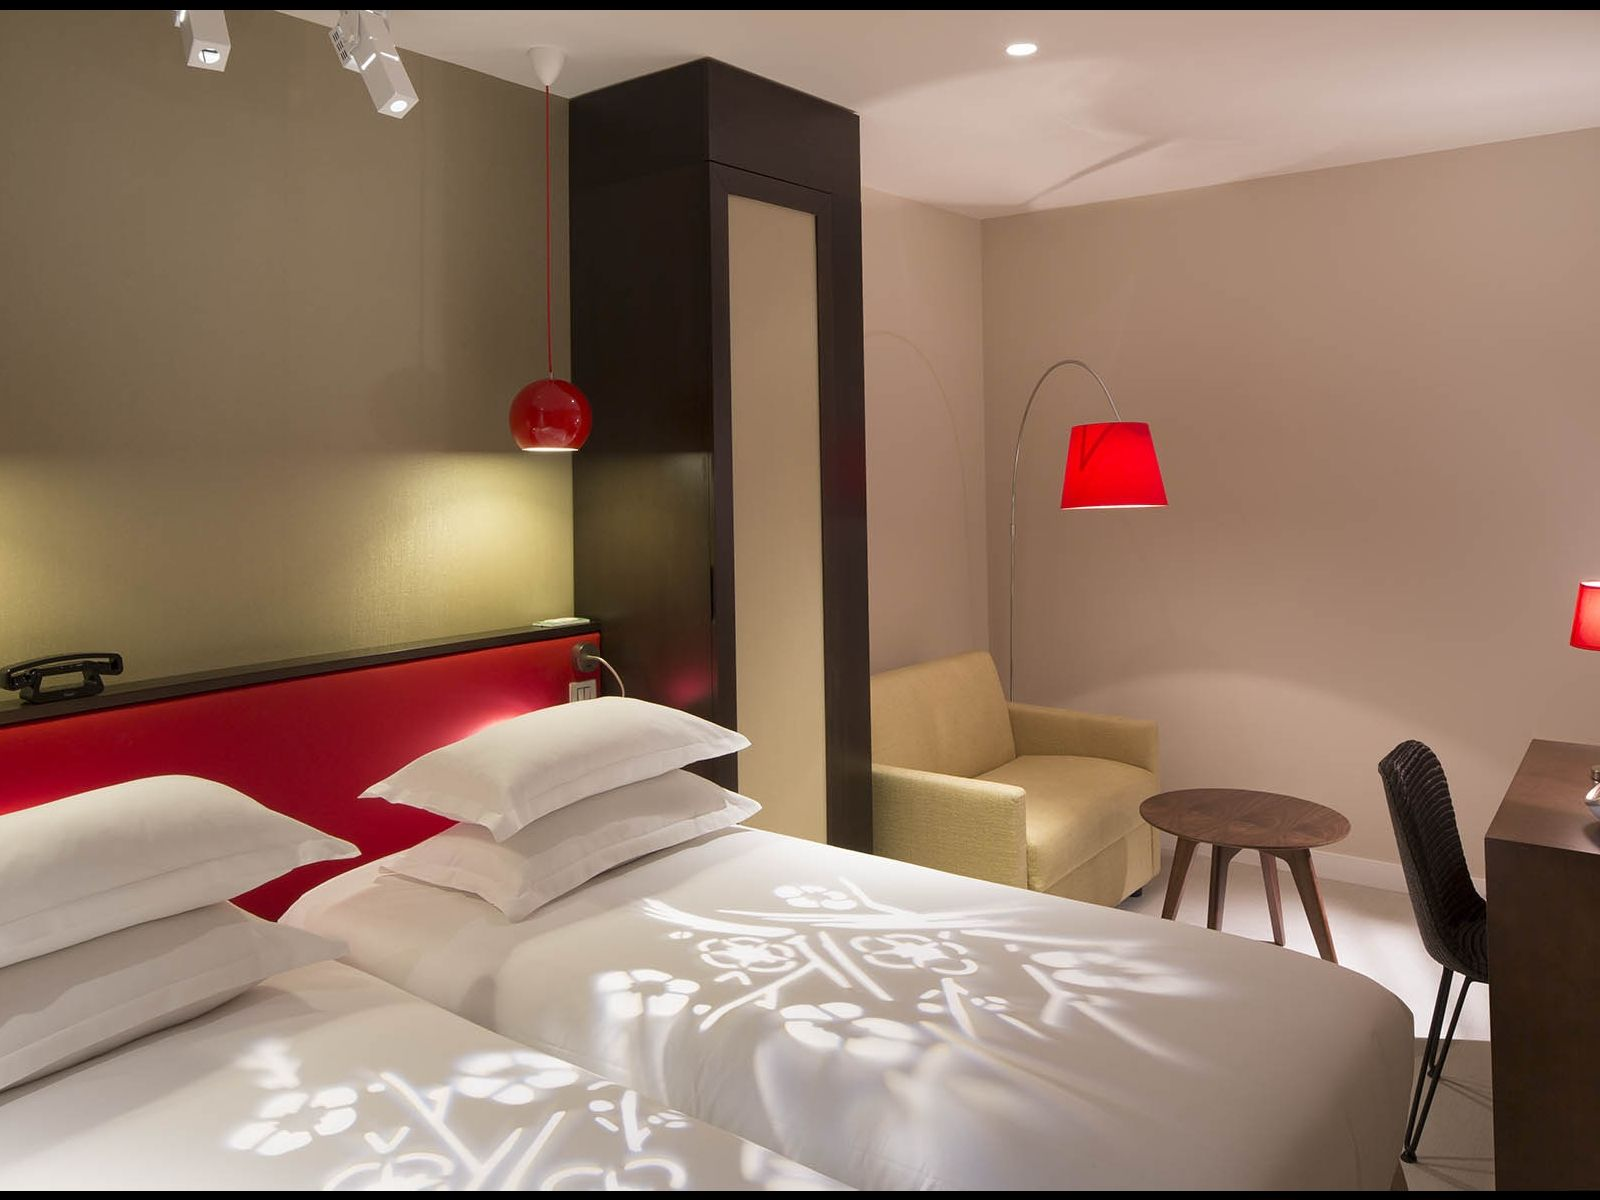 Hotel eden paris rooms hotel design paris for Hotel design paris